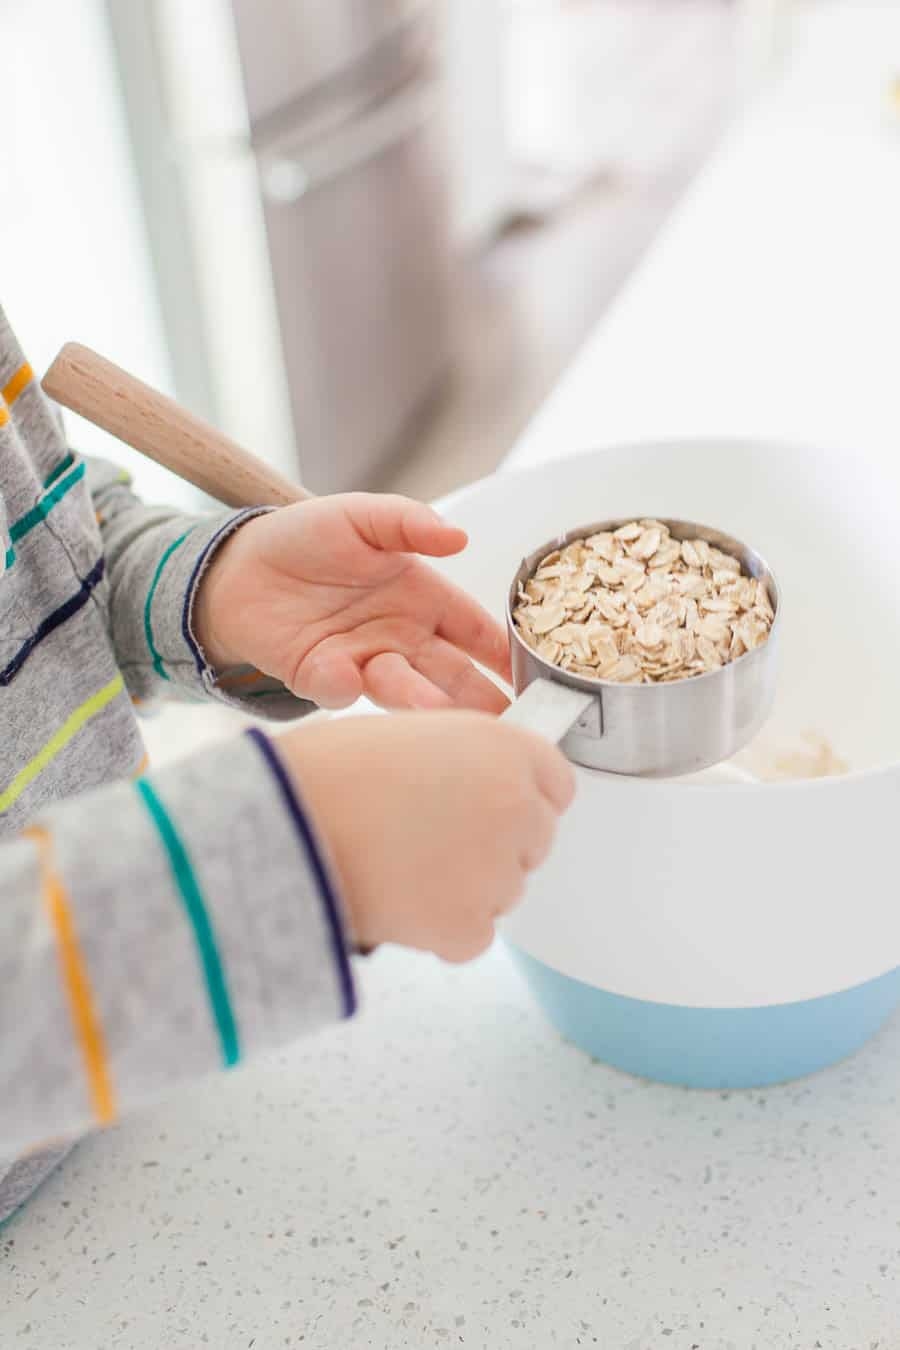 Teaching your toddler to help in the kitchen can be a daunting task, but it's one that can take away the stress of having to keep an eye on your kiddos while trying to prep dinner or a snack. Teaching your little ones about being in the kitchen can be fun and stressless with a few quick tips for cooking with toddlers!